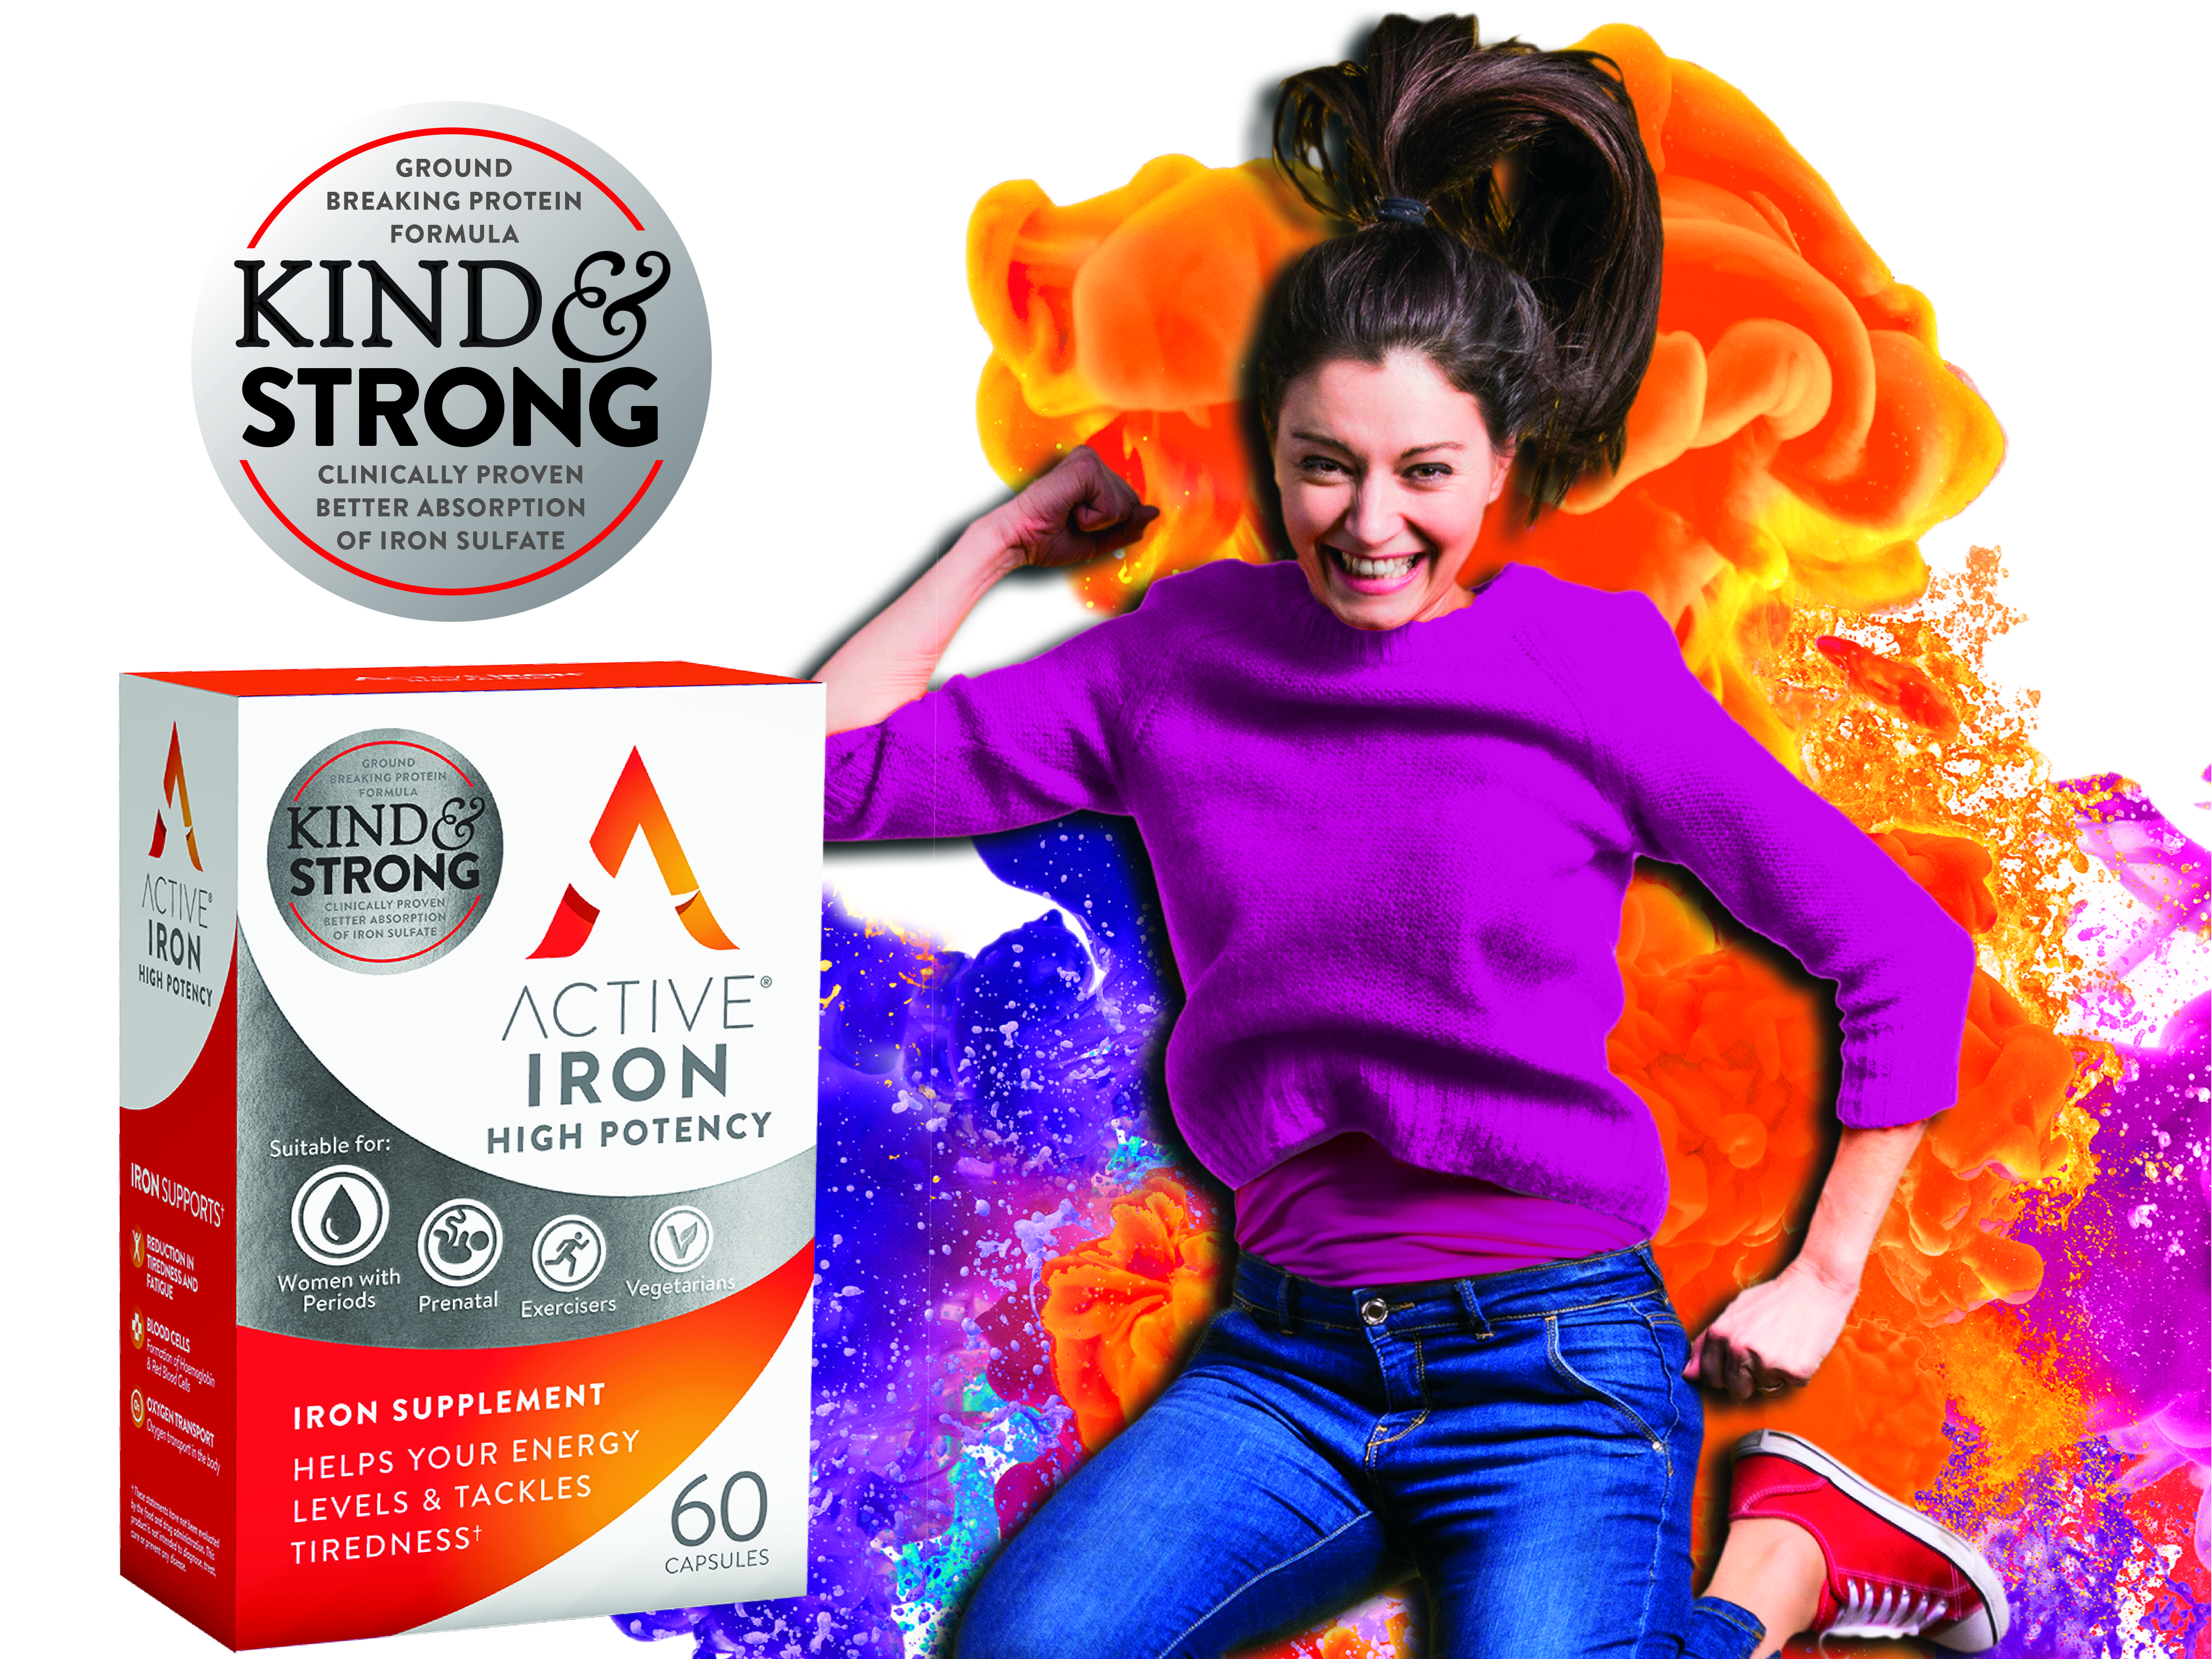 Active Iron High Potency Iron Supplement